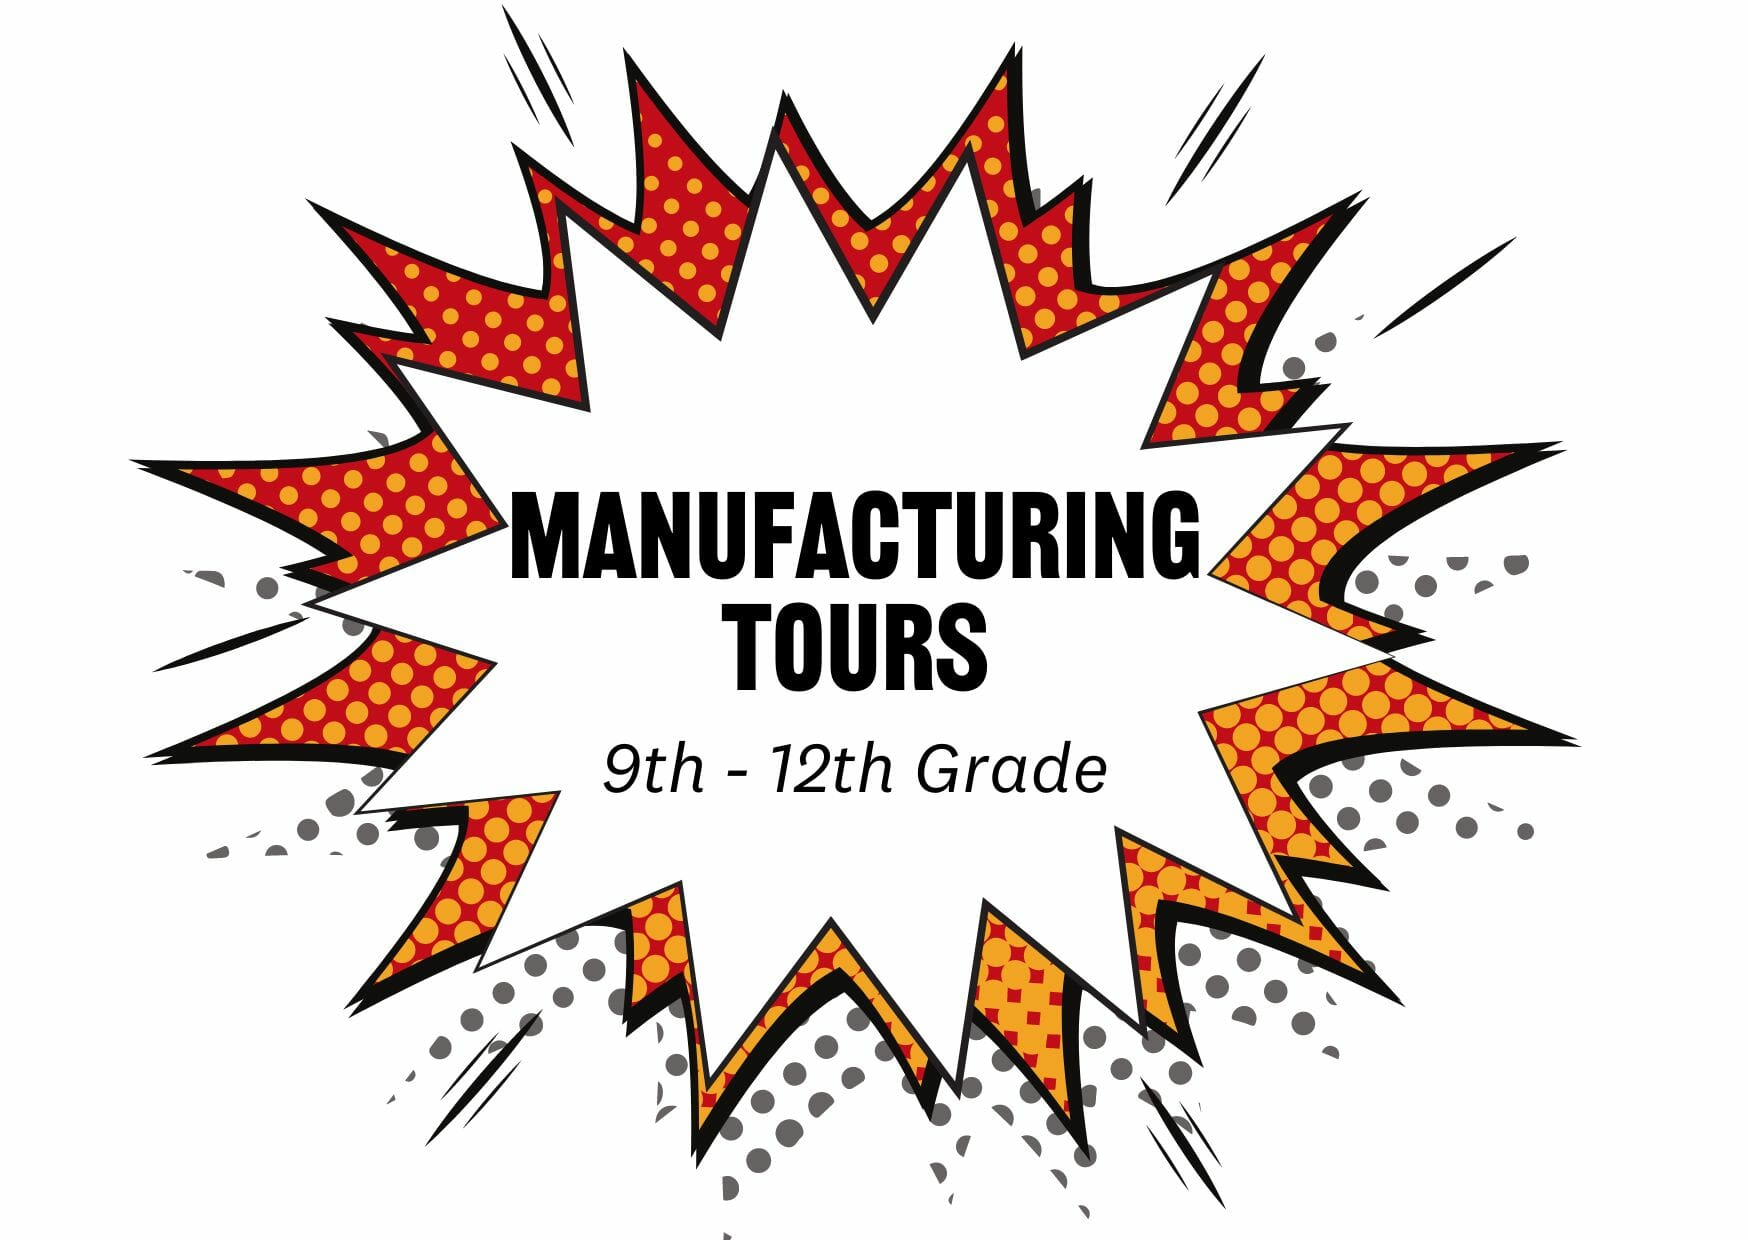 Manufacturing Week Save the Date - tours